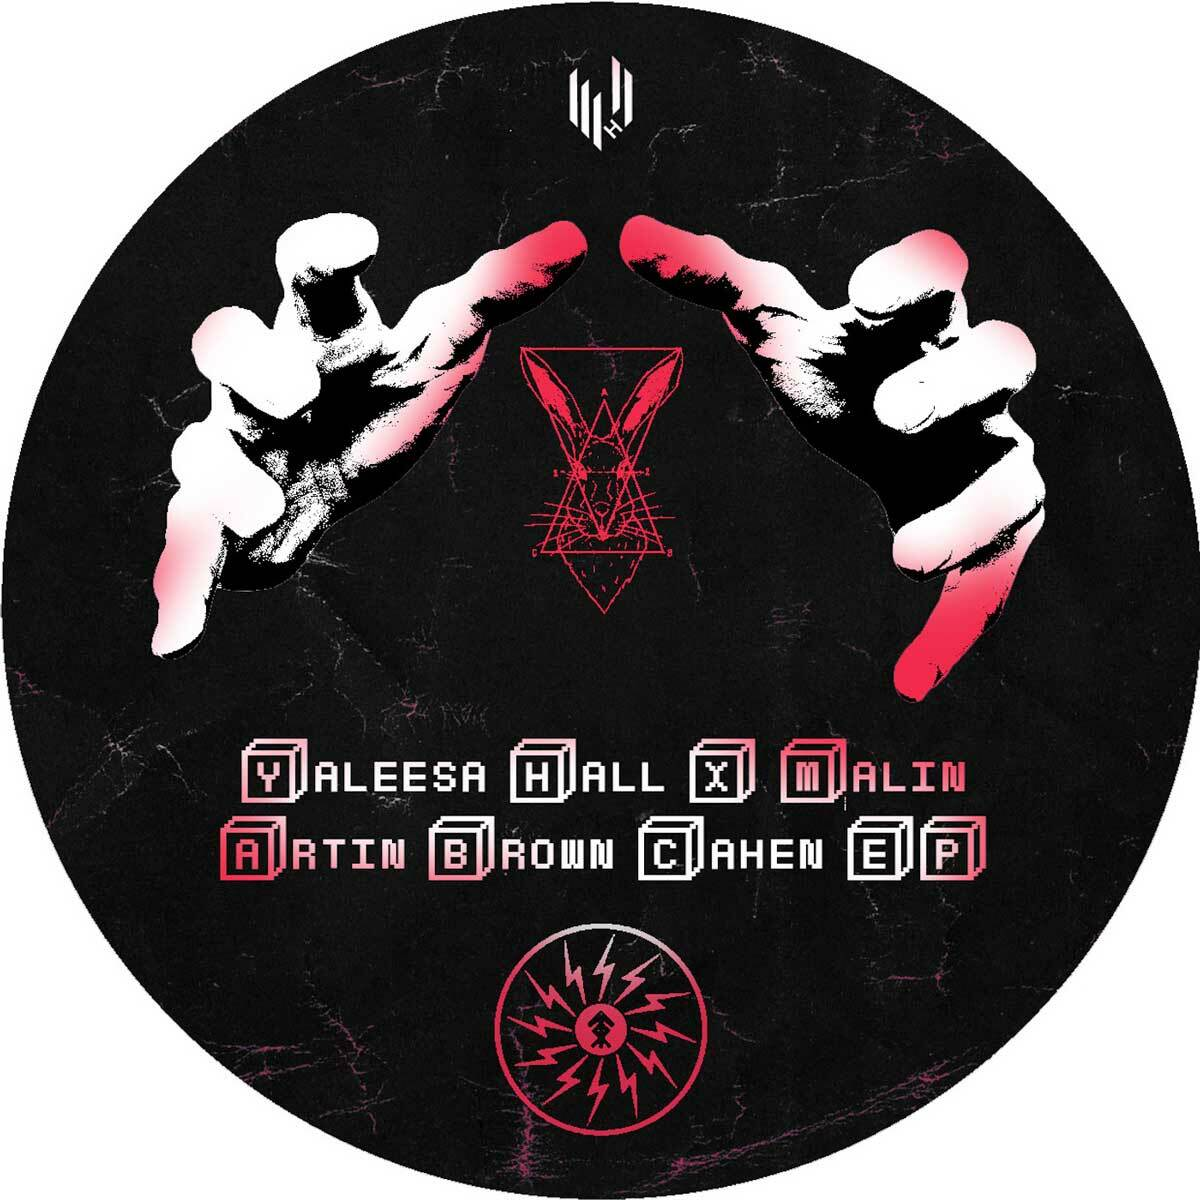 Yaleesa Hall x Malin – Artin Brown Cahen EP (Hypercolour)